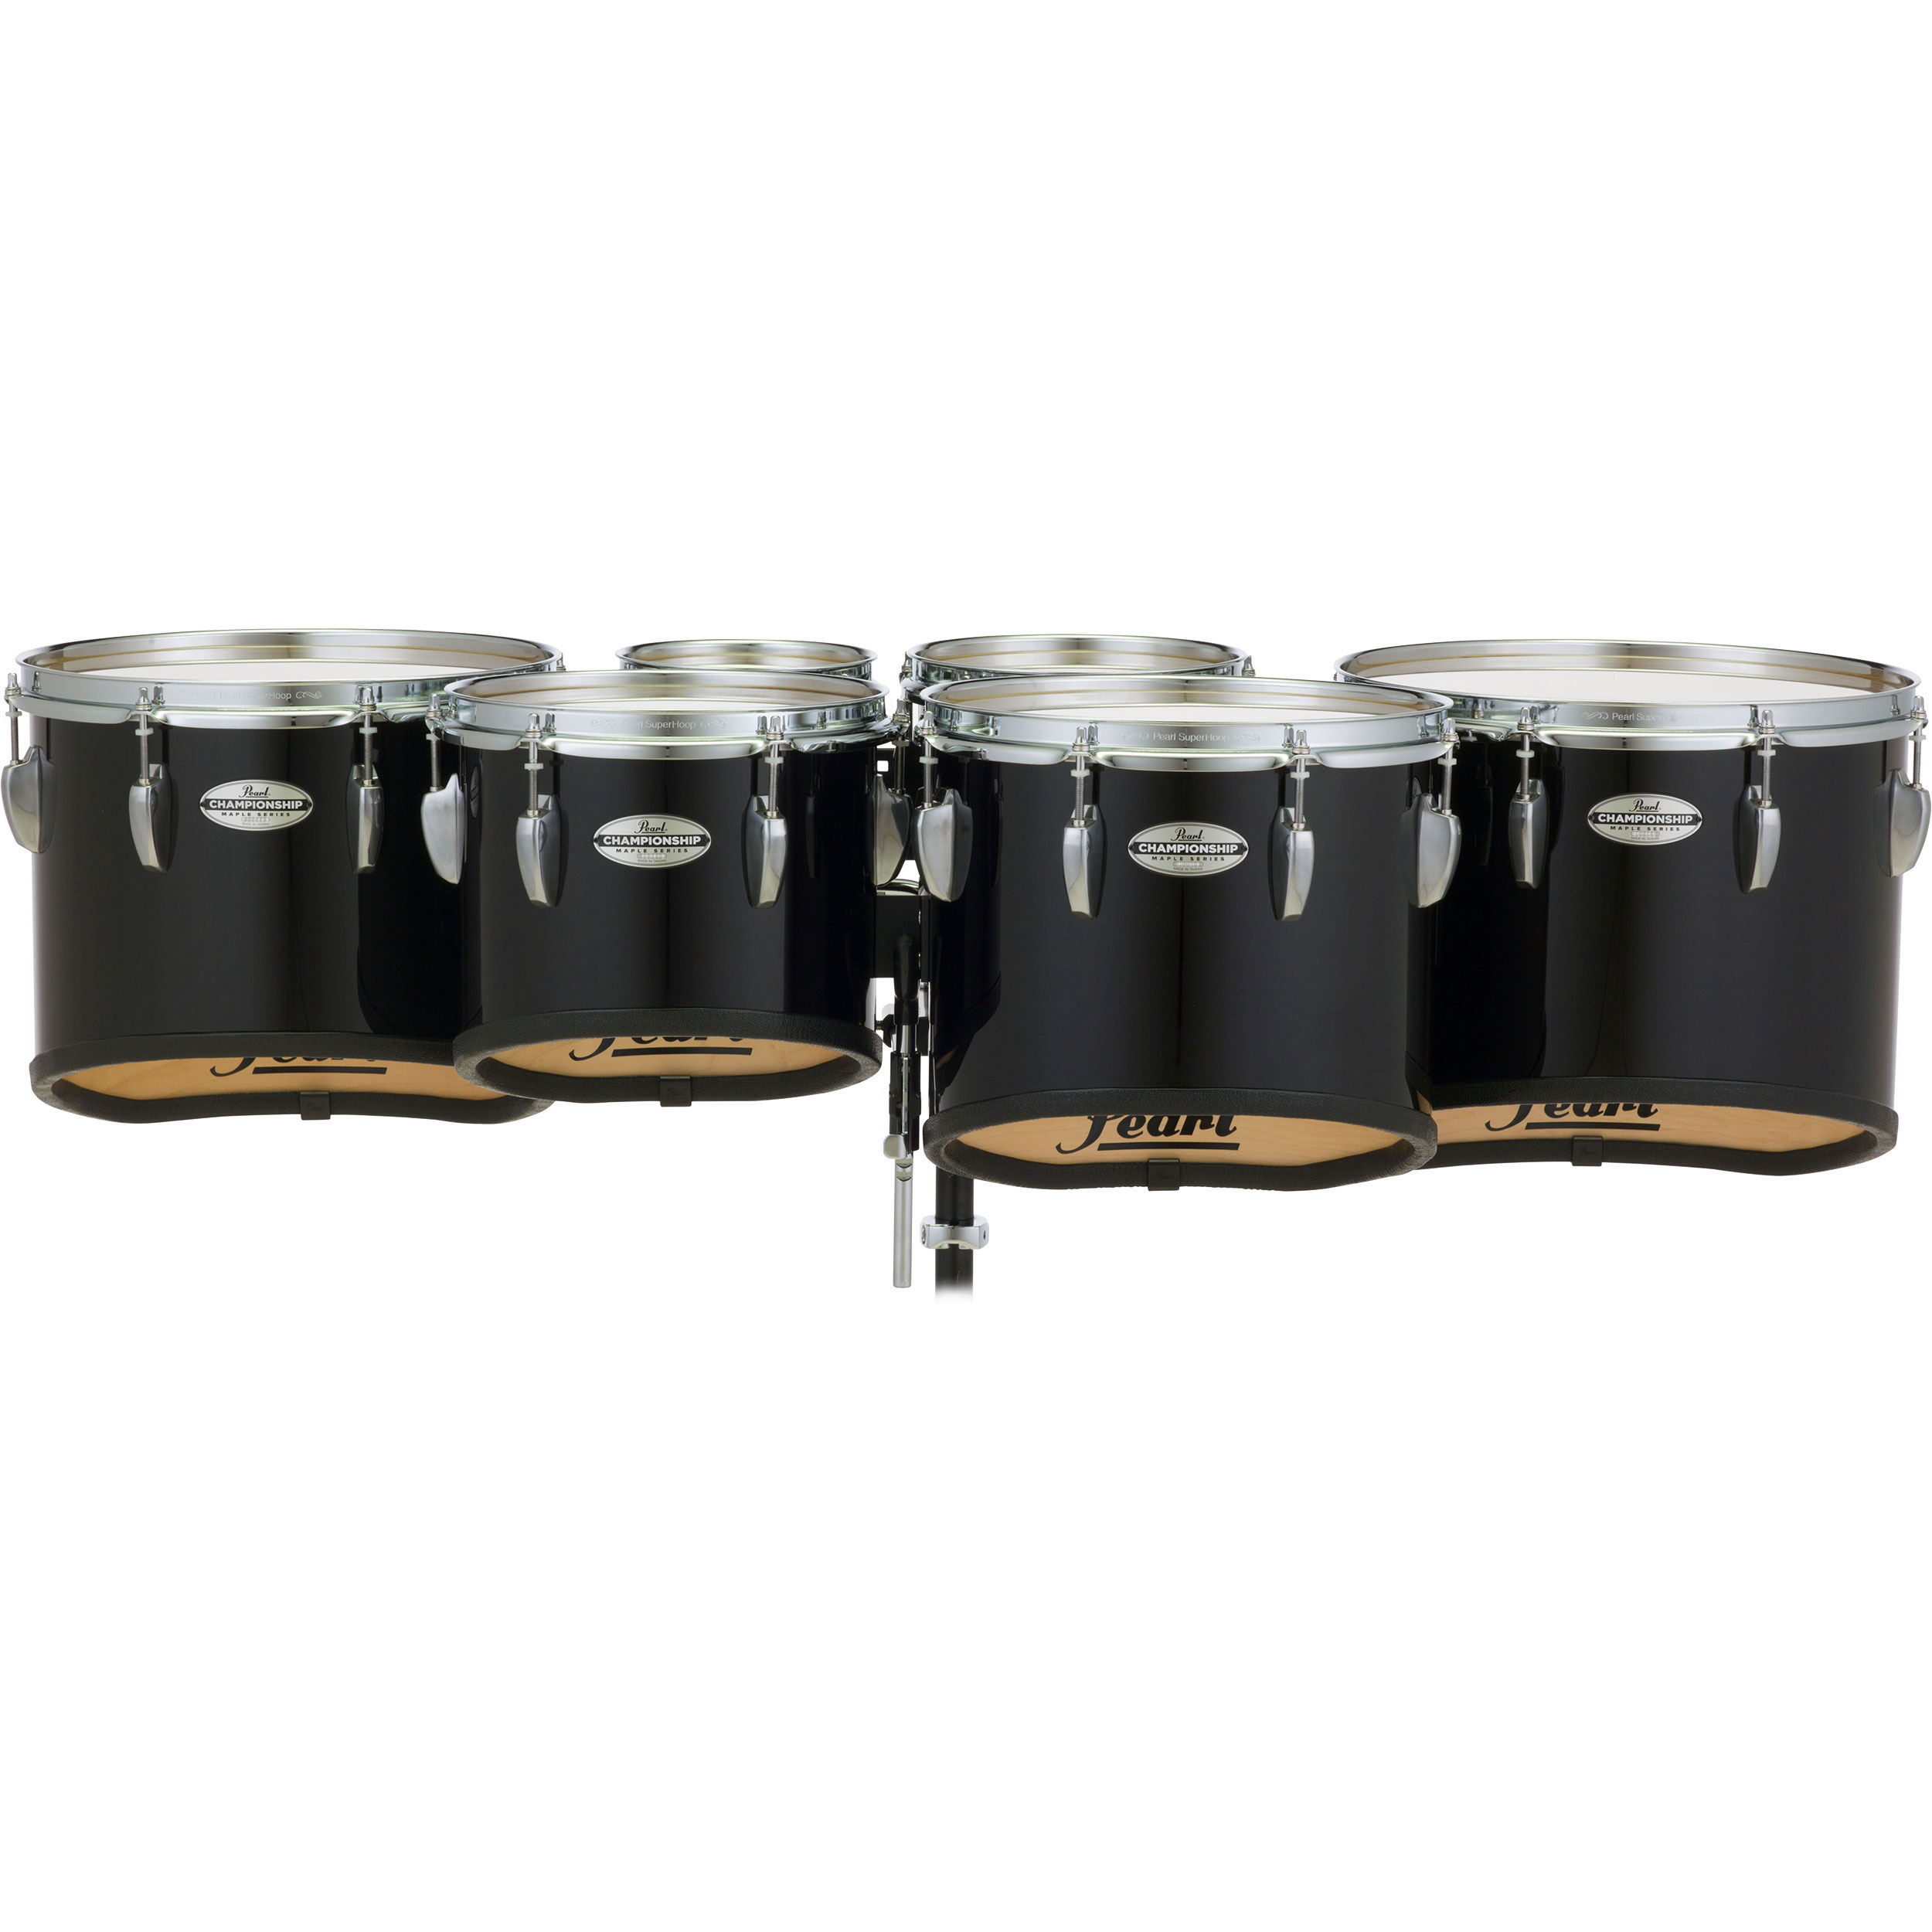 "Pearl 6-6-10-12-13-14"" PMTM Championship Maple Marching Tenors in Wrap Finish"